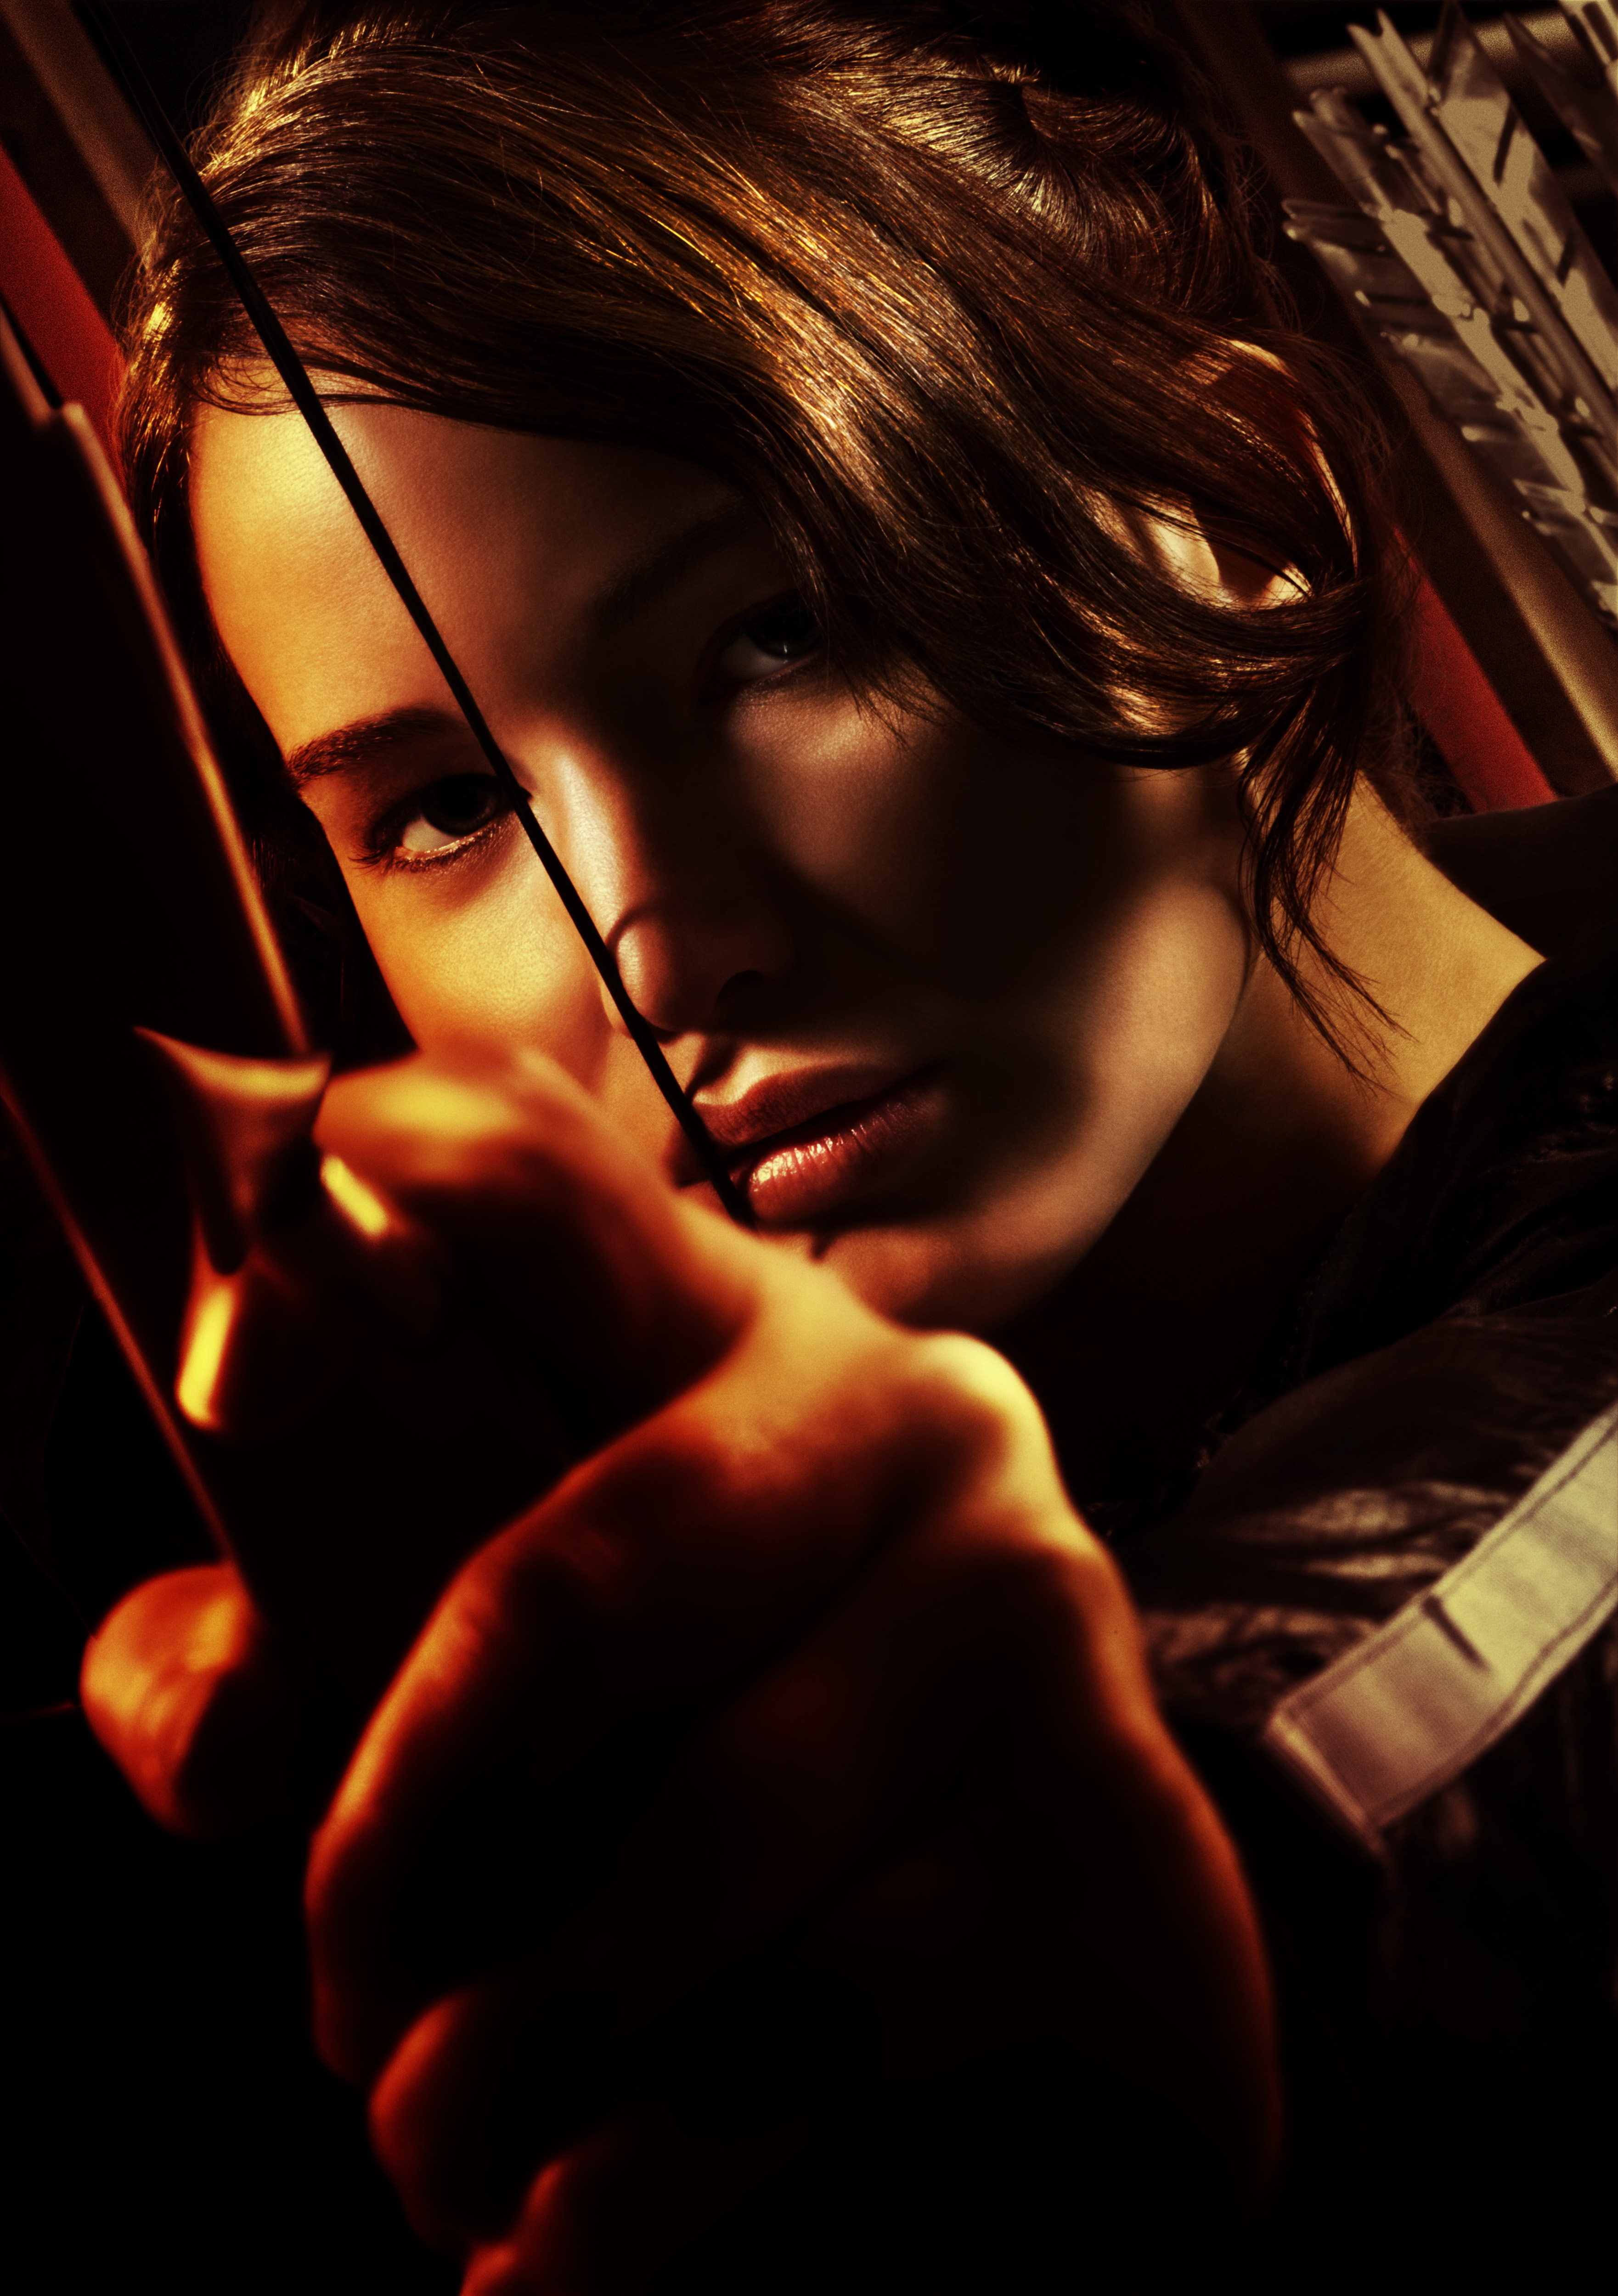 hunger games As the war of panem escalates to the destruction of other districts, katniss everdeen, the reluctant leader of the rebellion, must bring together an army against president snow, while all she holds dear hangs in the balance.